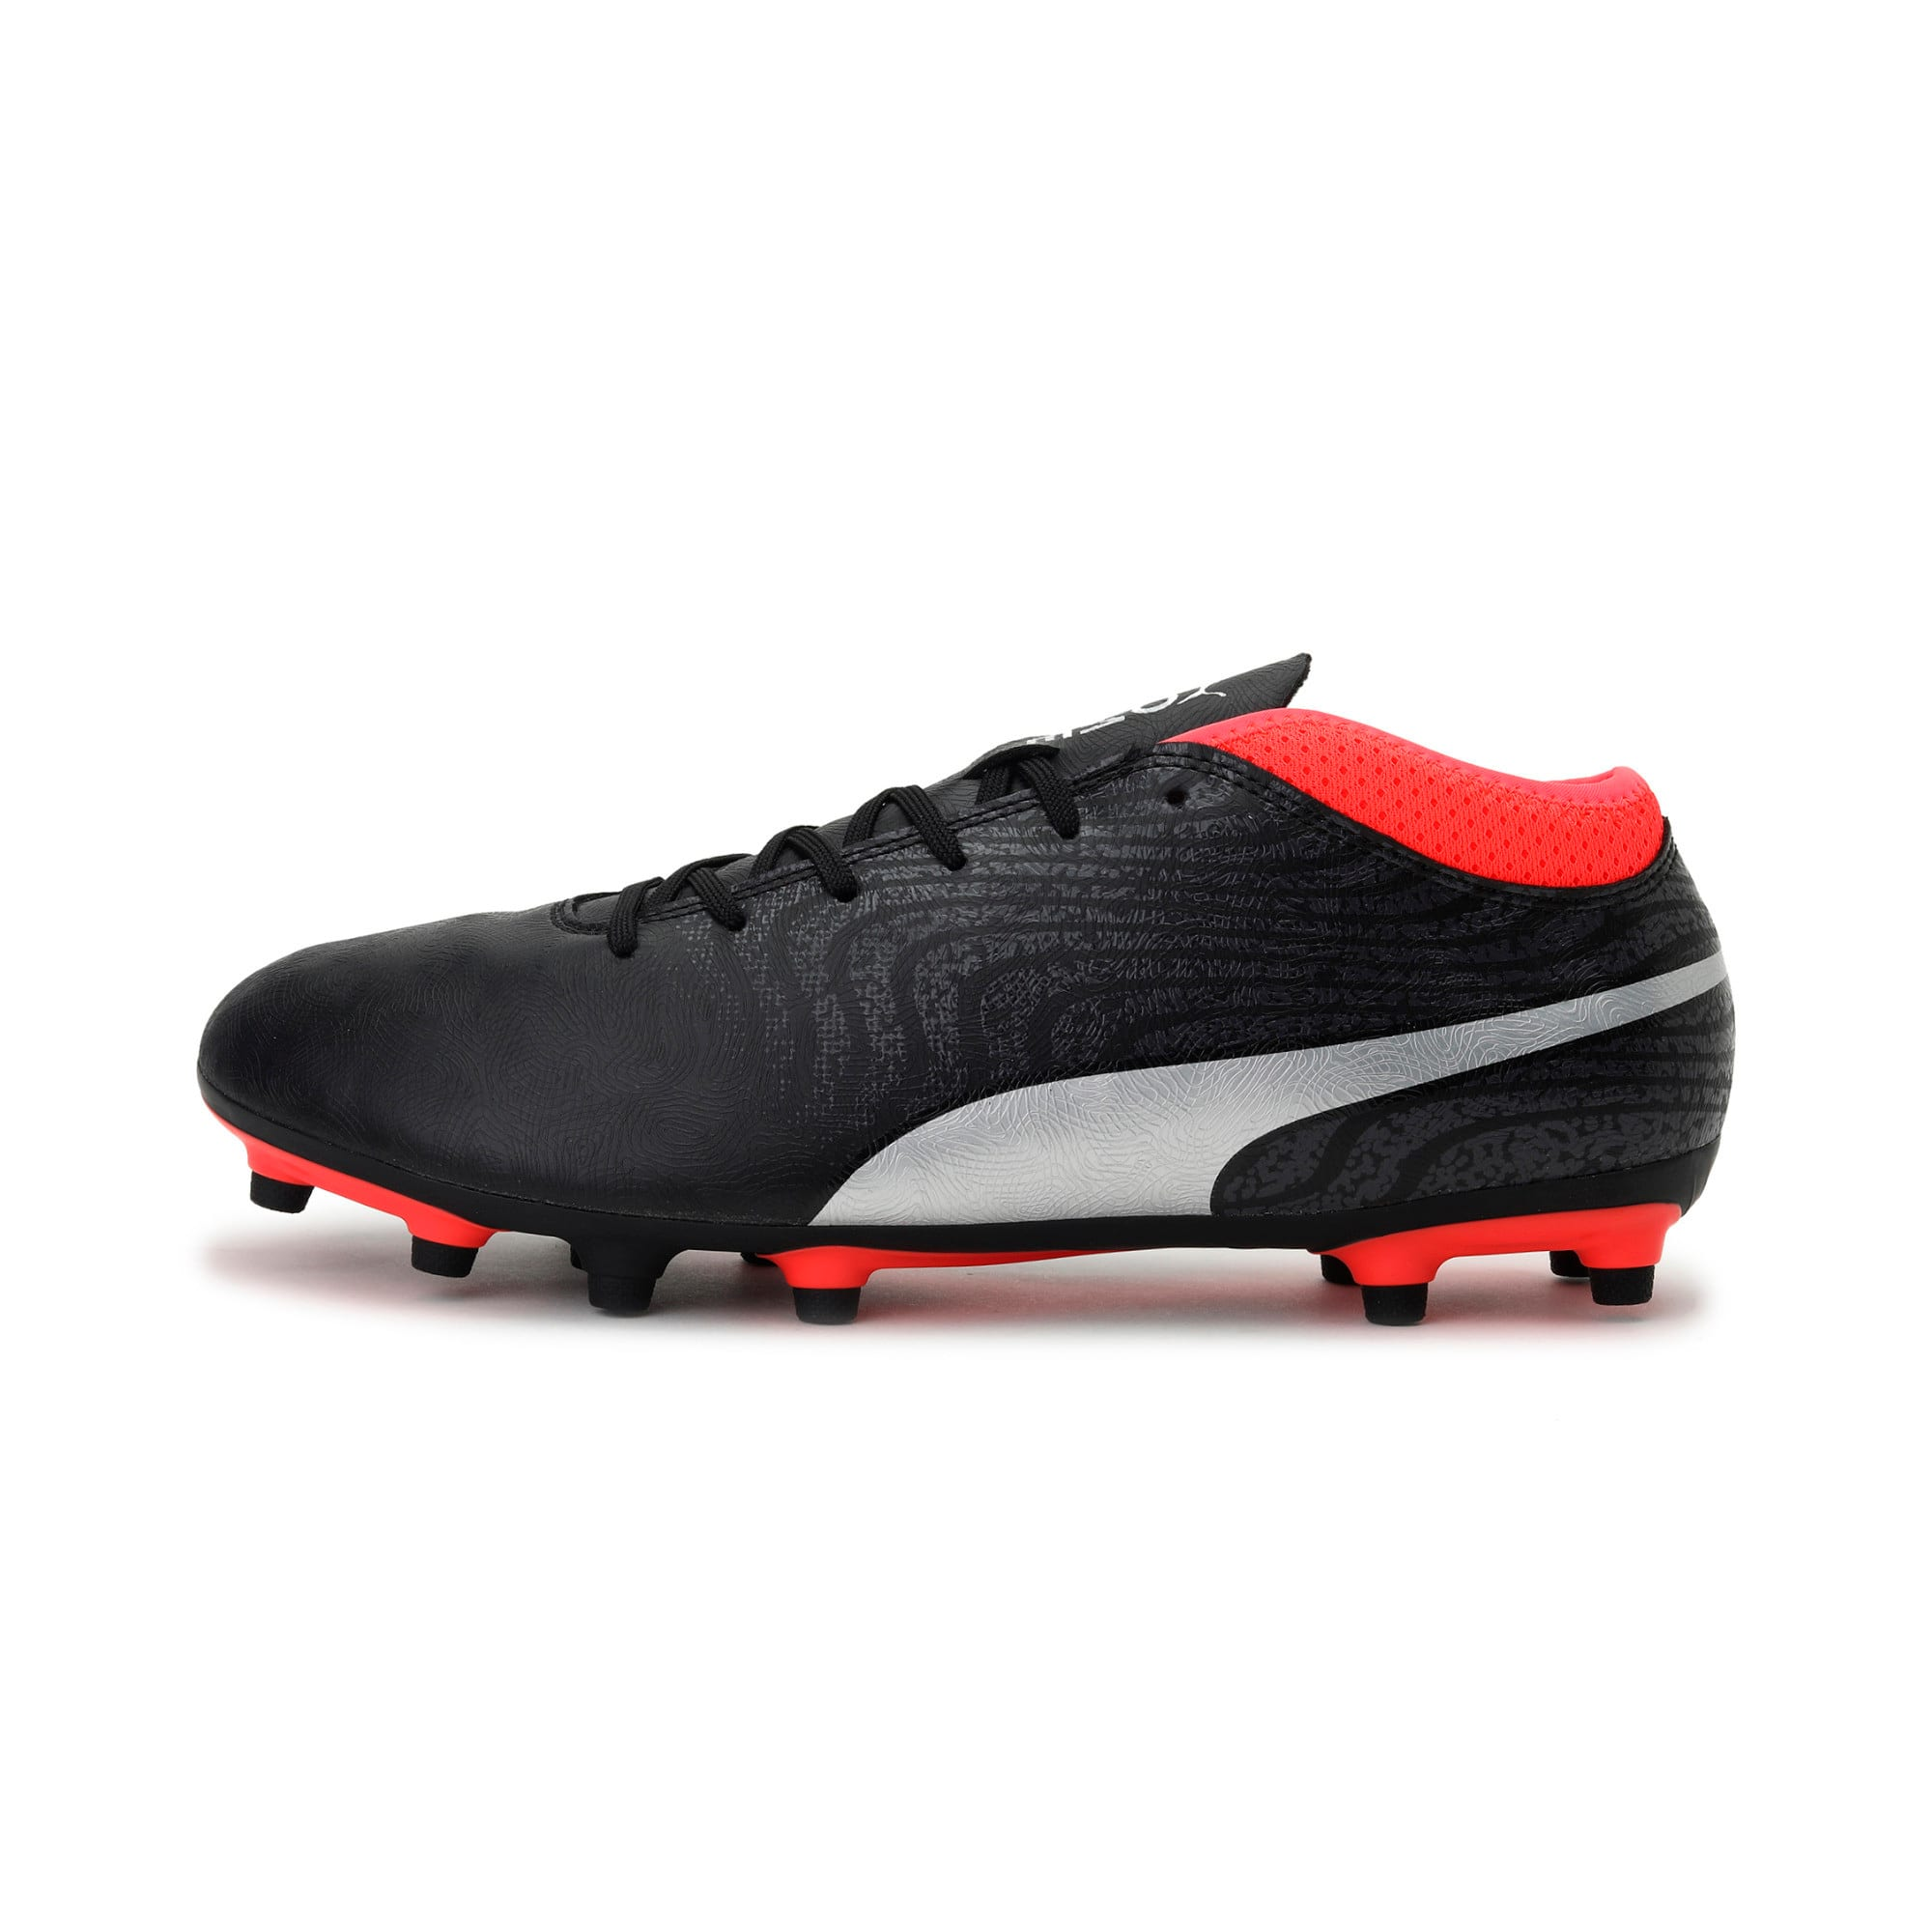 Thumbnail 1 of ONE 18.4 FG Men's Football Boots, Black-Silver-Red, medium-IND